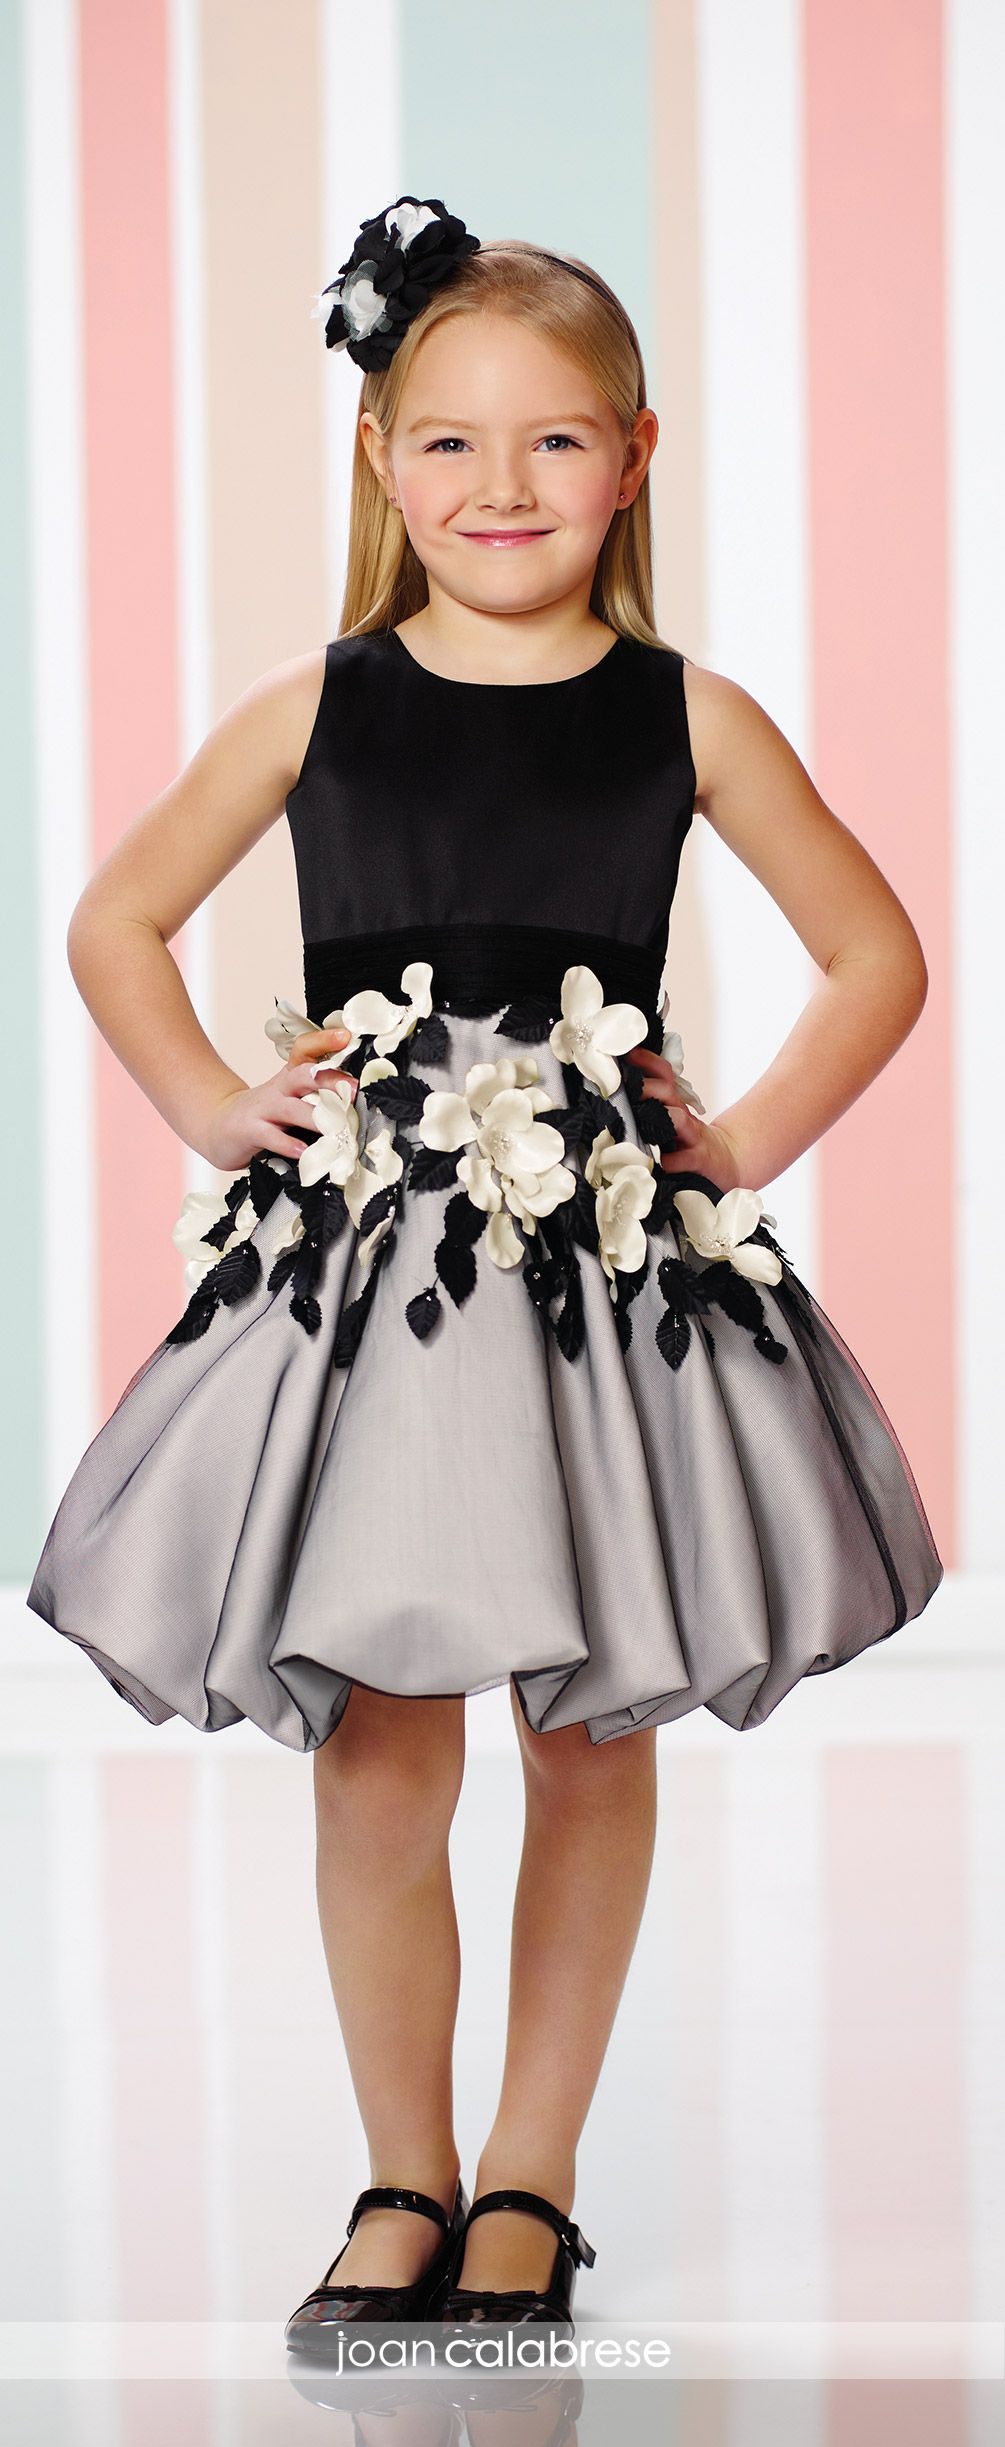 f77d879dd40 Joan Calabrese for Mon Cheri - Fall 2016 - Style No. 216321 - black and  ivory flower girl dress with satin bodice and tulle bubble skirt with 3  dimensional ...